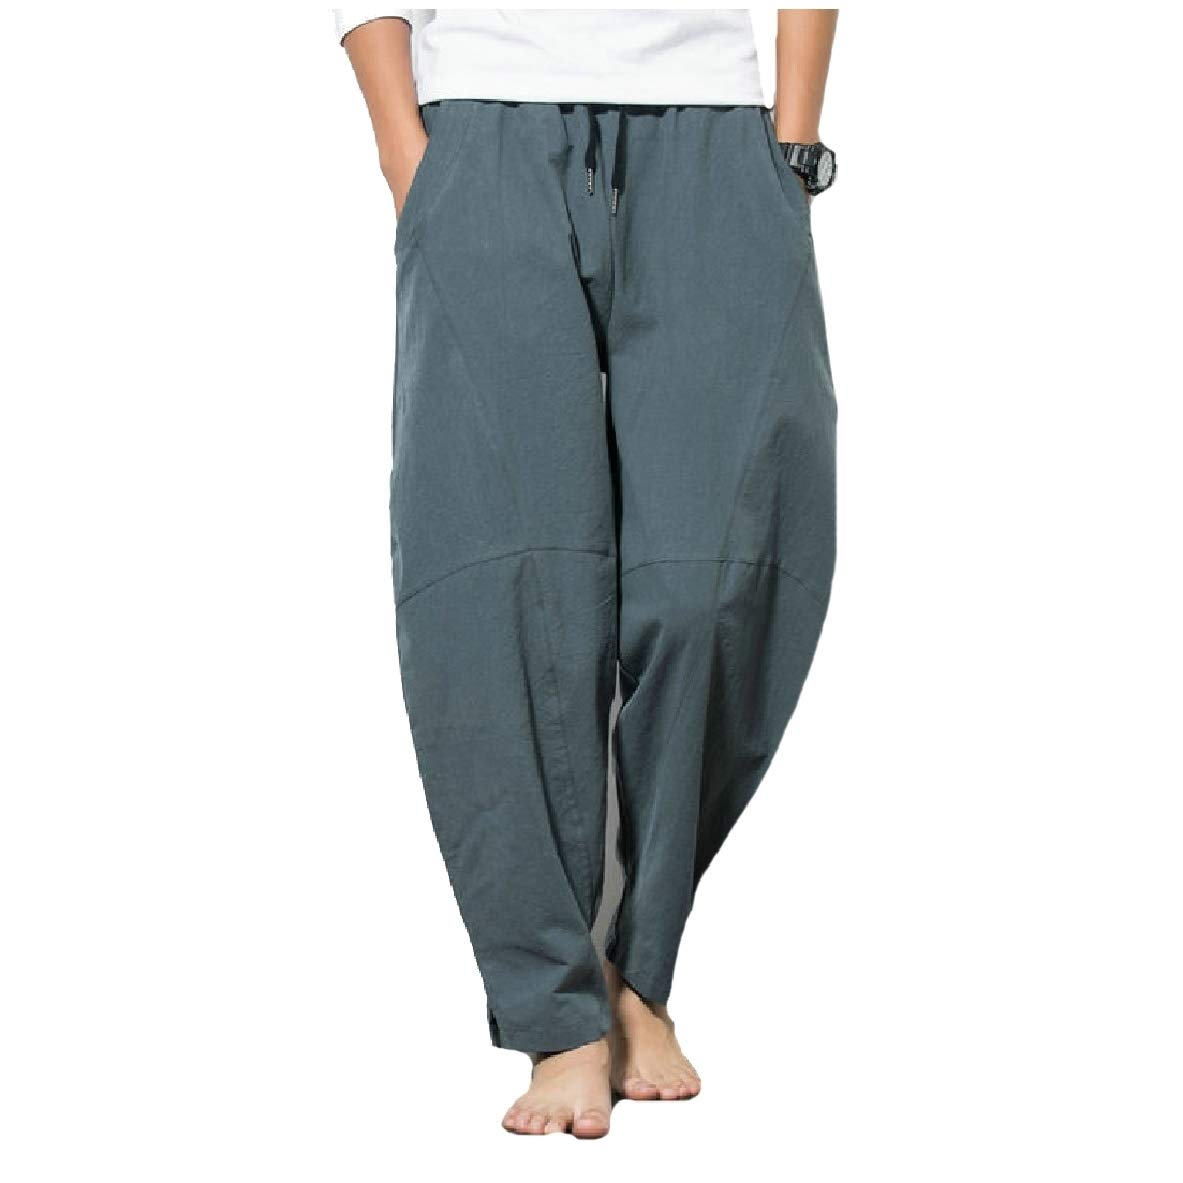 AngelSpace Mens Lightweight Relaxed Fit Patchwork Relaxed-Fit Tenths Pants